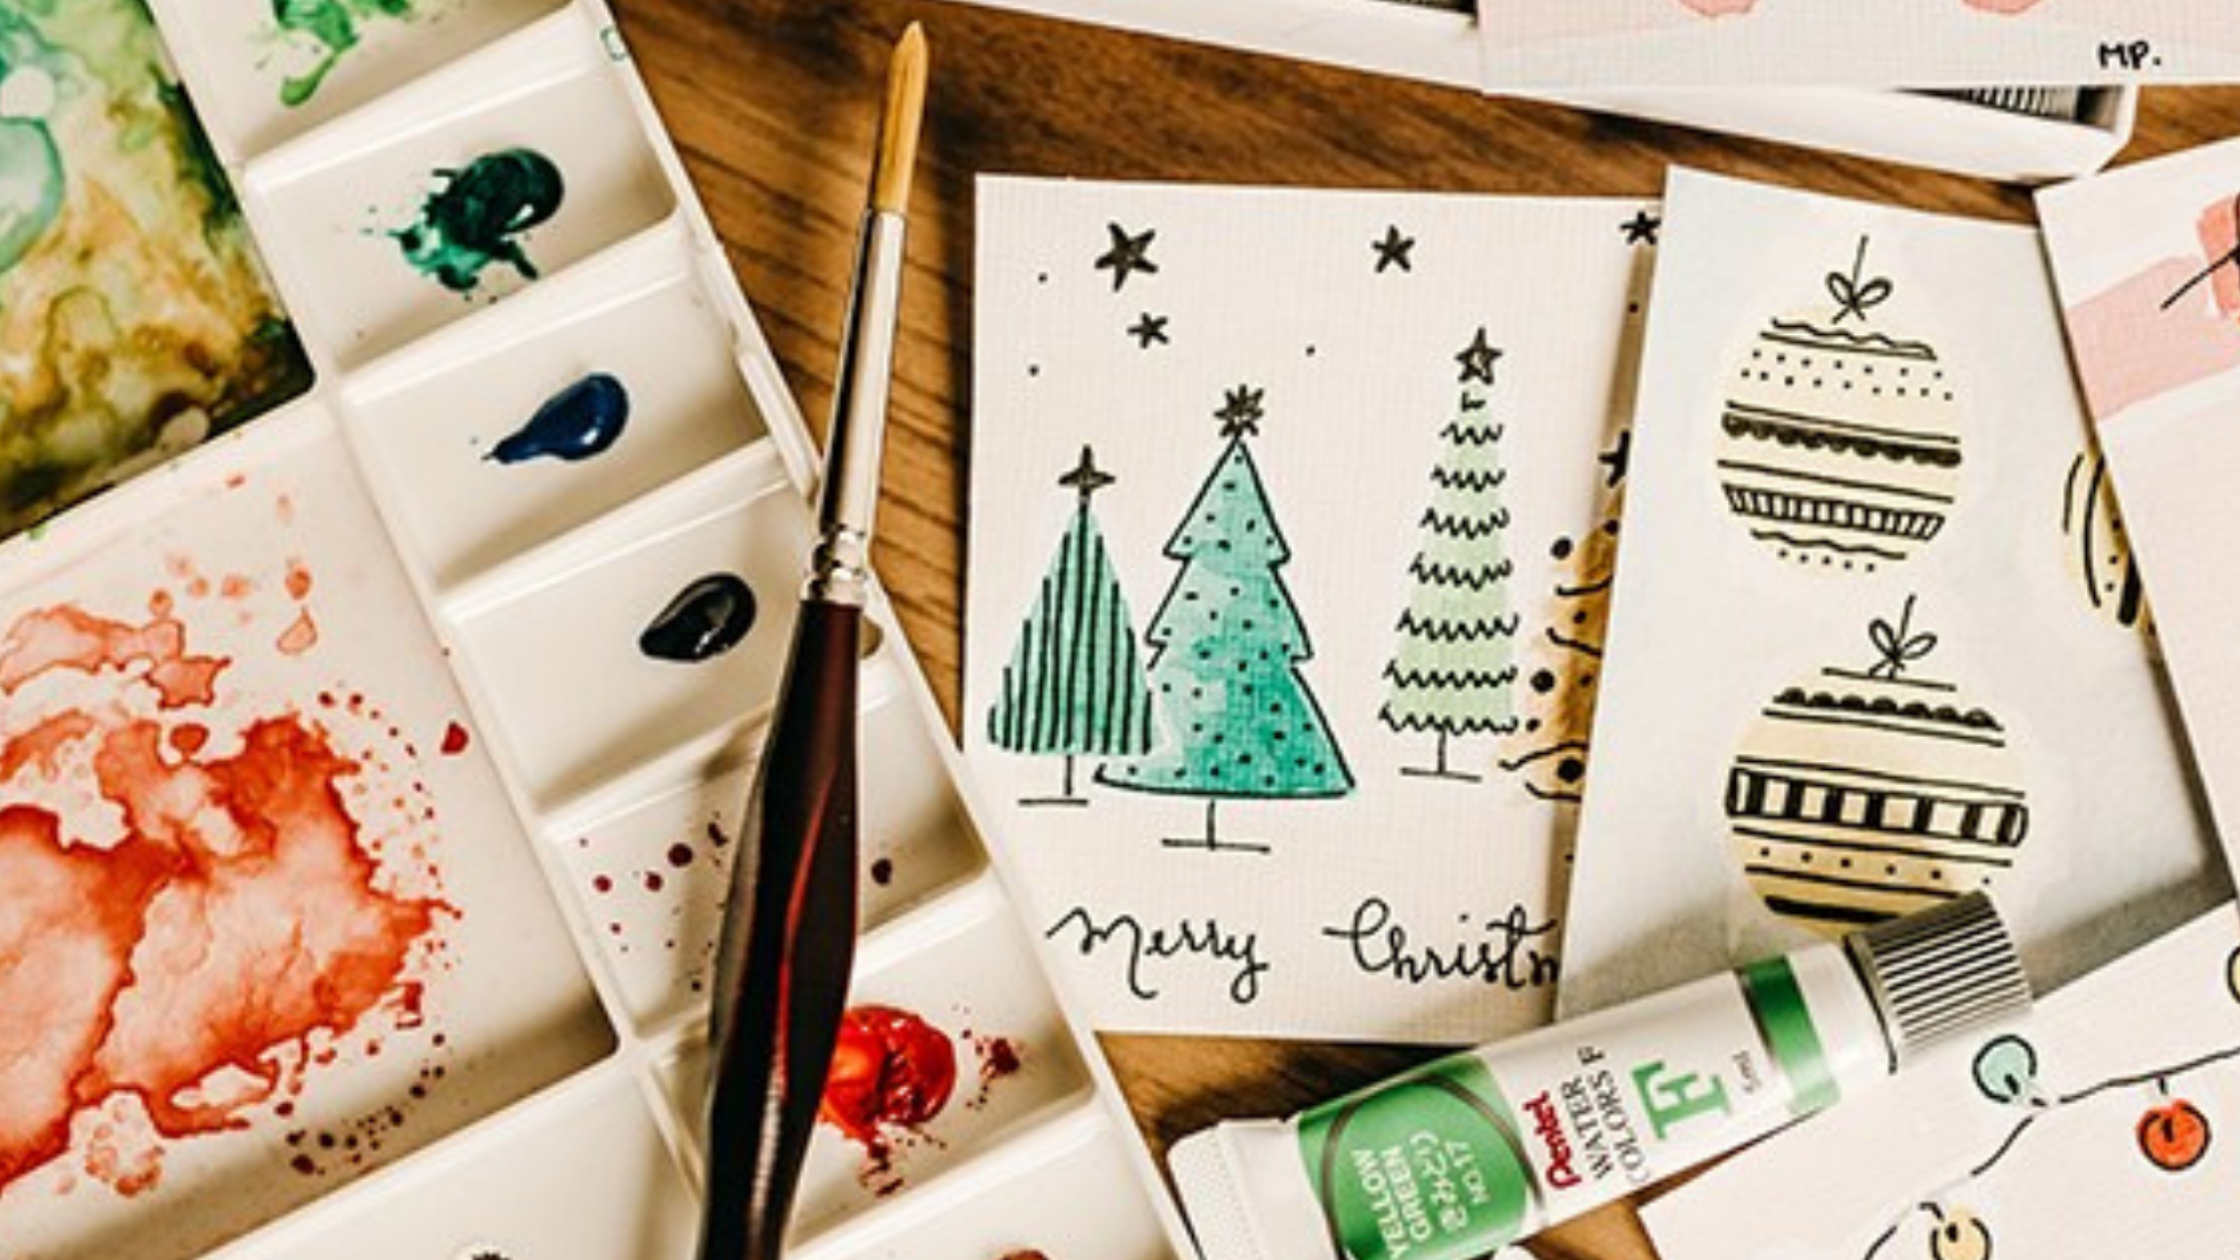 BullyingCanada asks your help in writing holiday cards for the homeless 0 12/15/2019